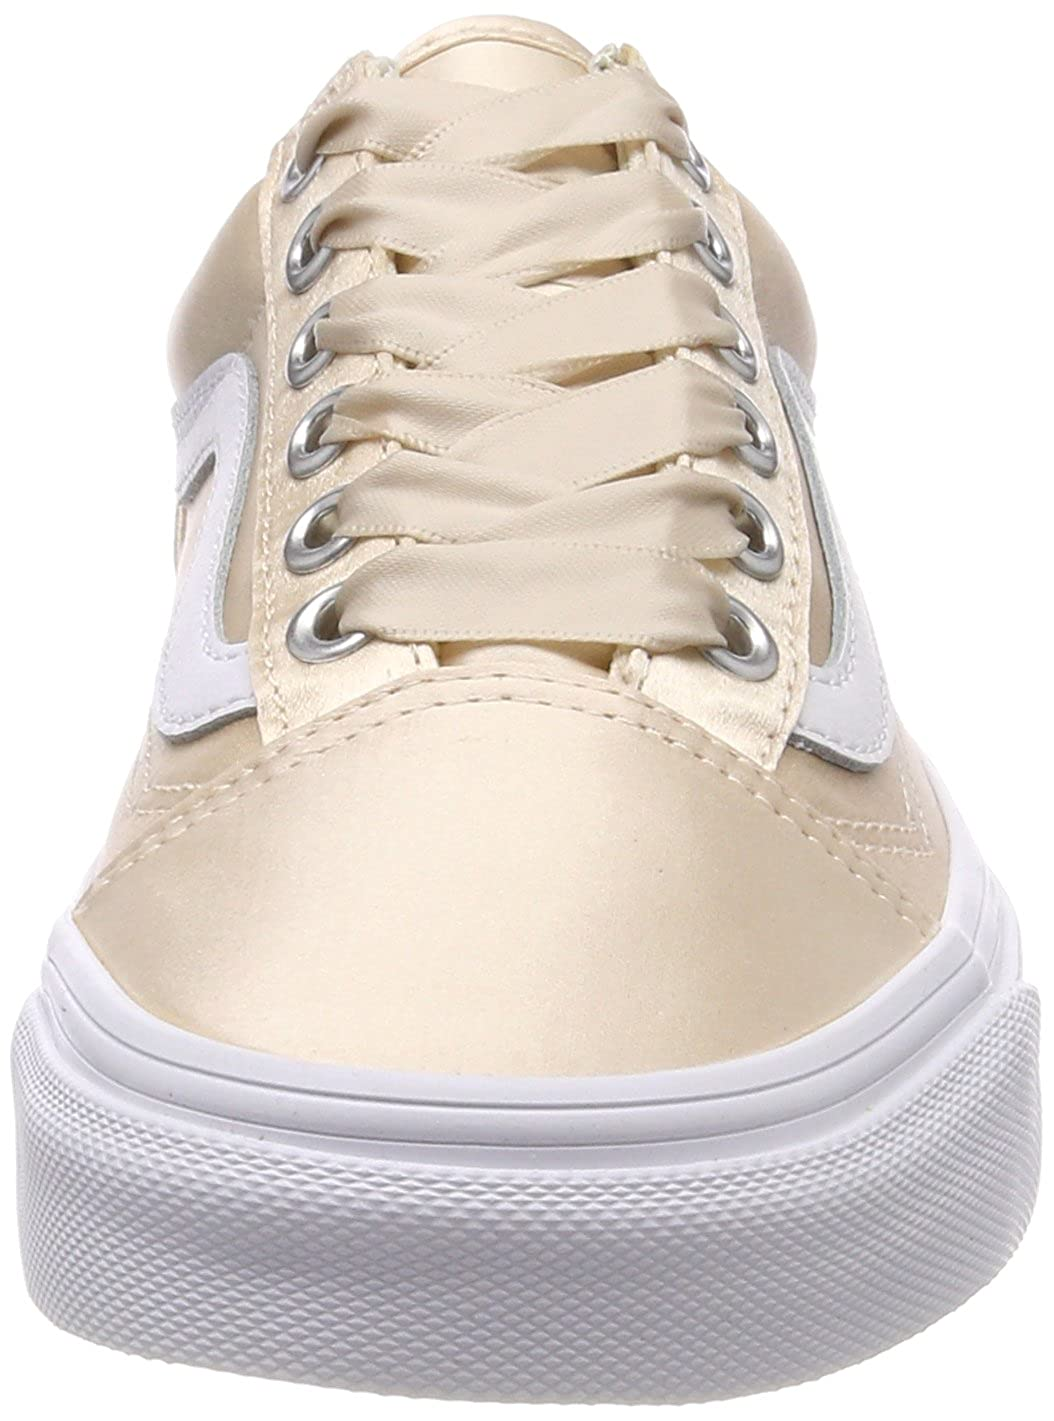 Vans Women s Old Skool Trainers Pink ((Satin Lux) Blush True White R1g) 8  UK  Buy Online at Low Prices in India - Amazon.in fbd0168cd